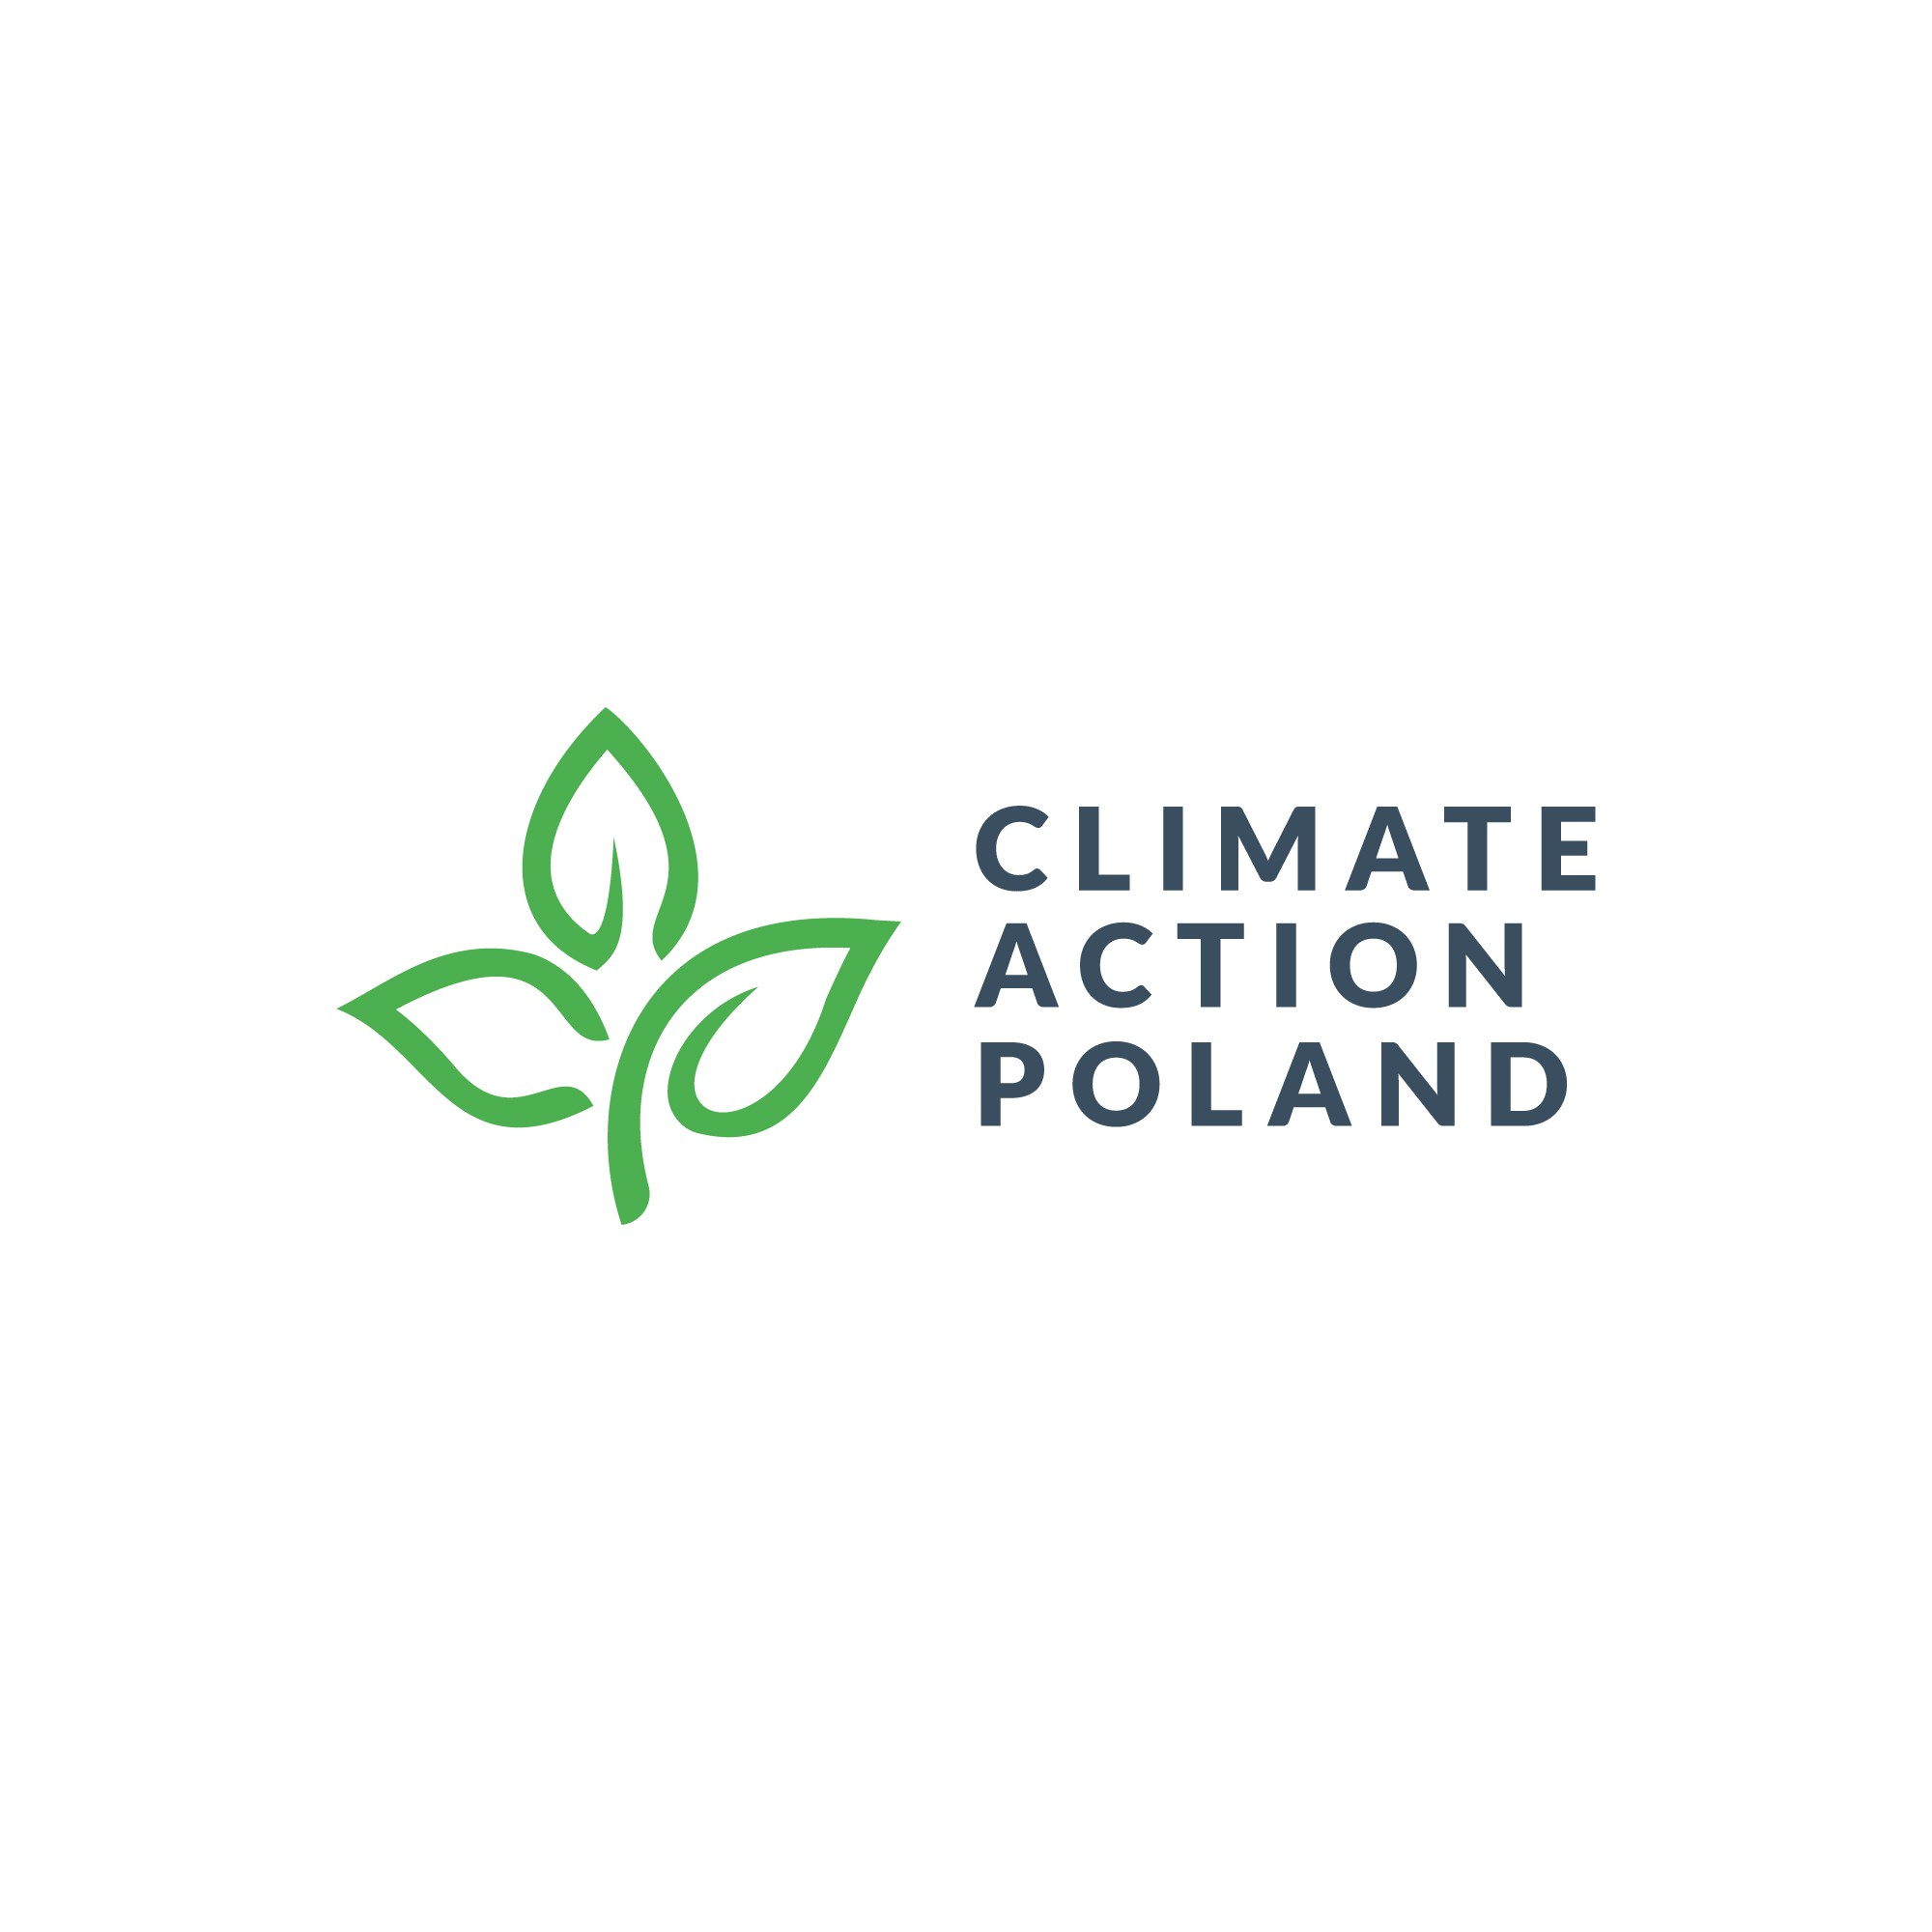 Going green & saving the Earth: help us designing the logo for the fund investing in green companies